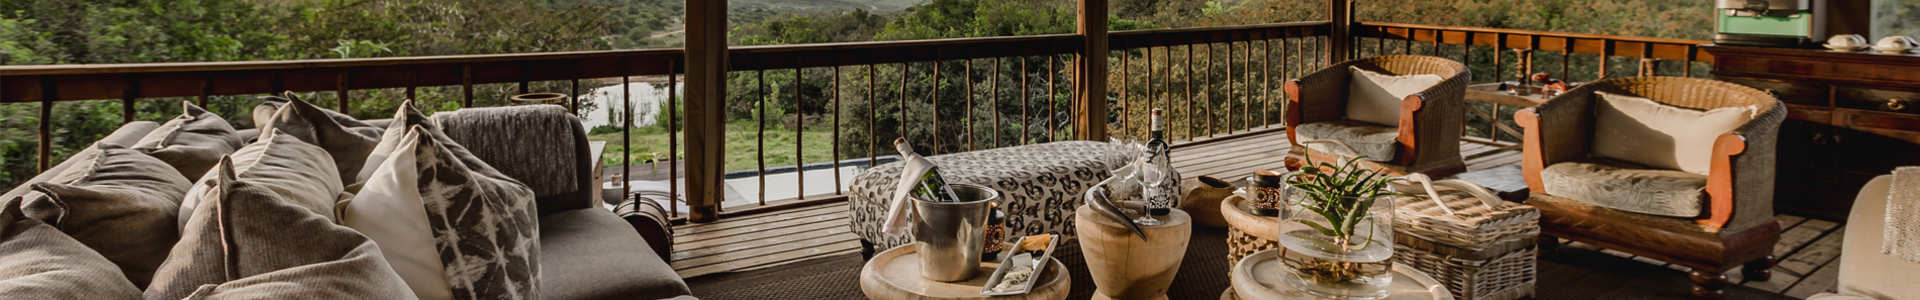 Bukela Game Lodge Eastern Cape South Africa Accommodation 2